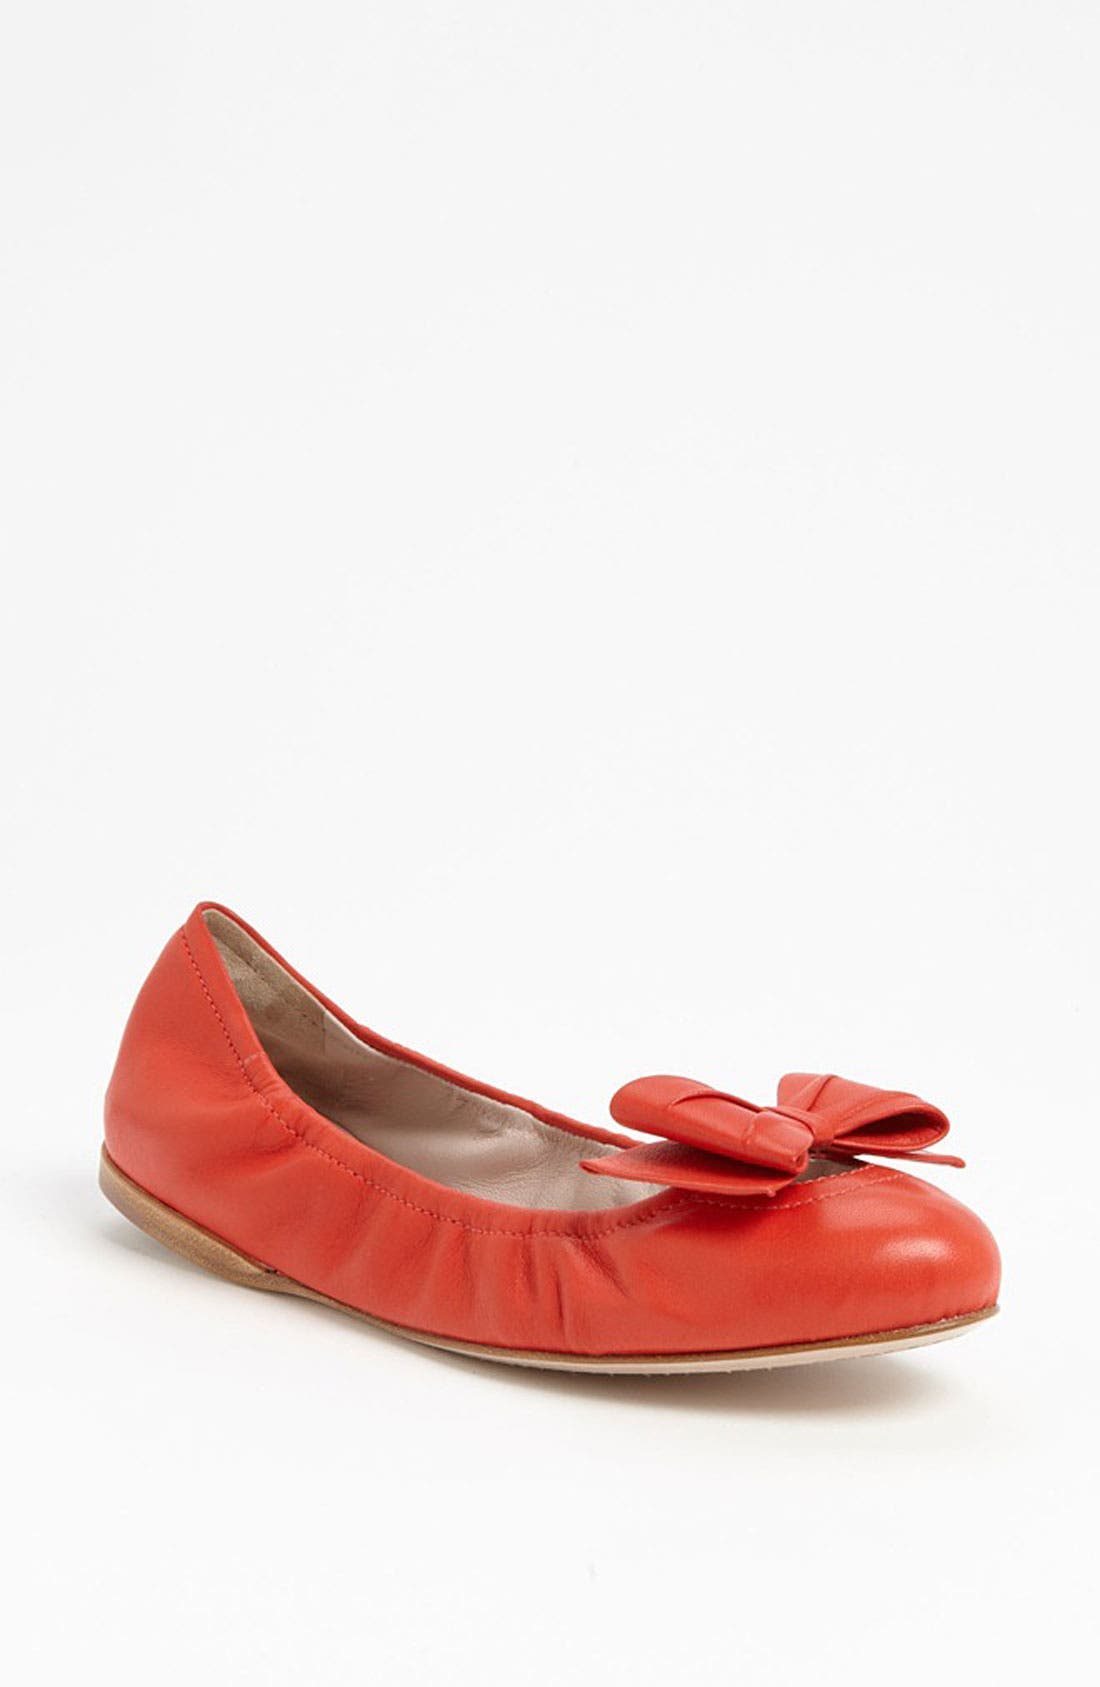 Alternate Image 1 Selected - Miu Miu Bow Ballet Flat